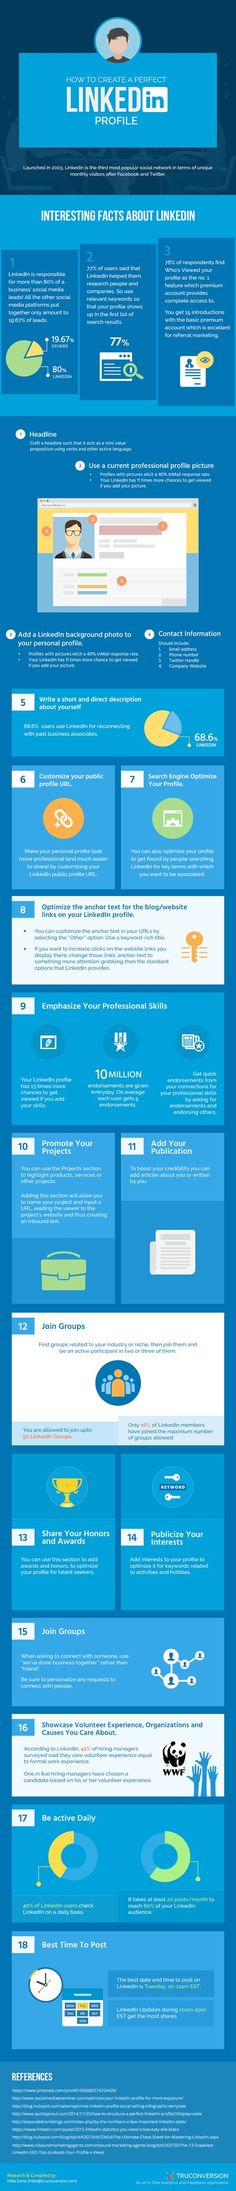 18 Tips to Create Your Perfect LinkedIn Profile